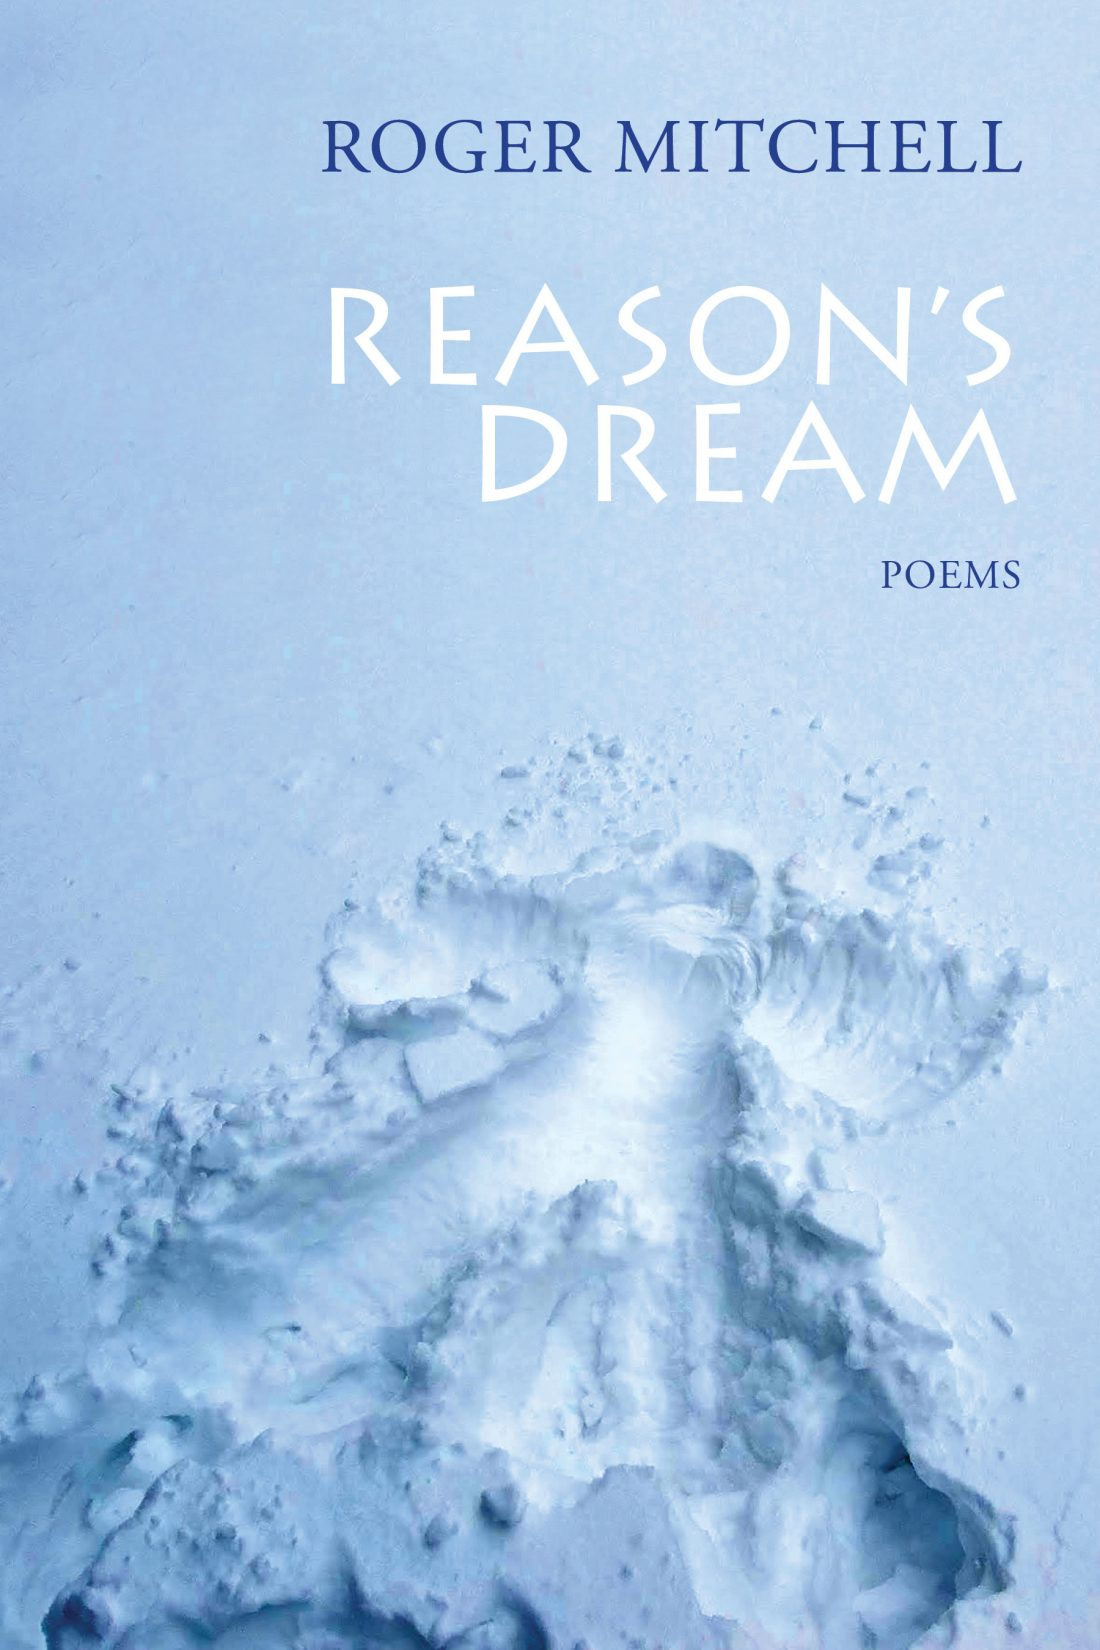 Reason's Dream by Roger Mitchell